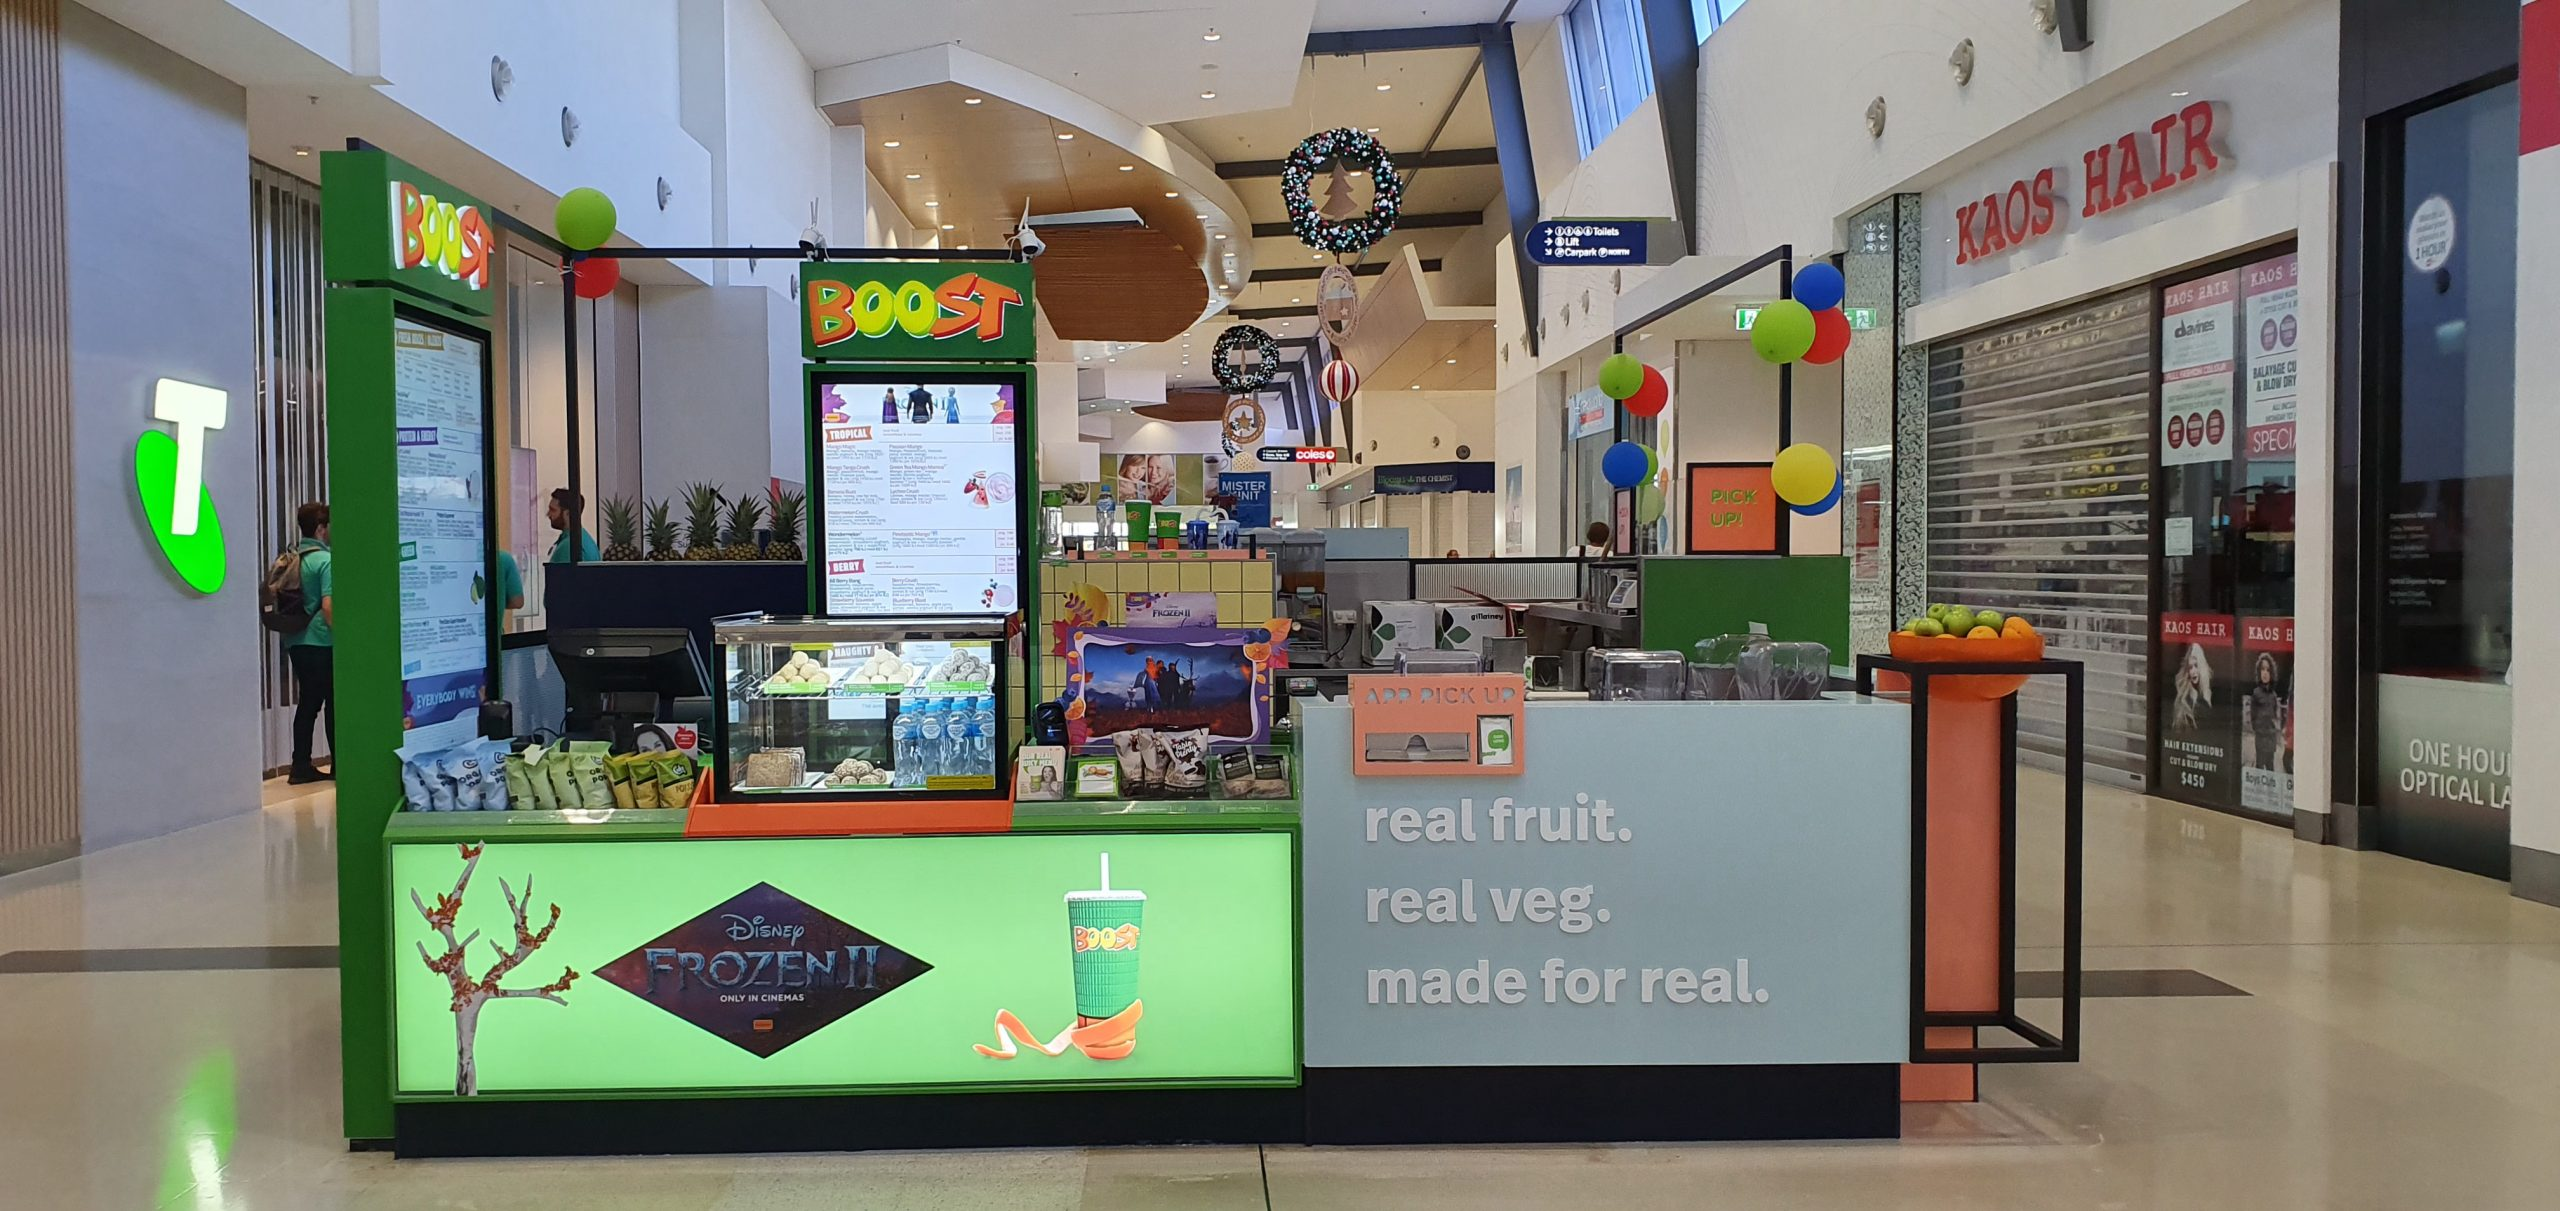 Private: Tweed Heads, NSW- Existing store